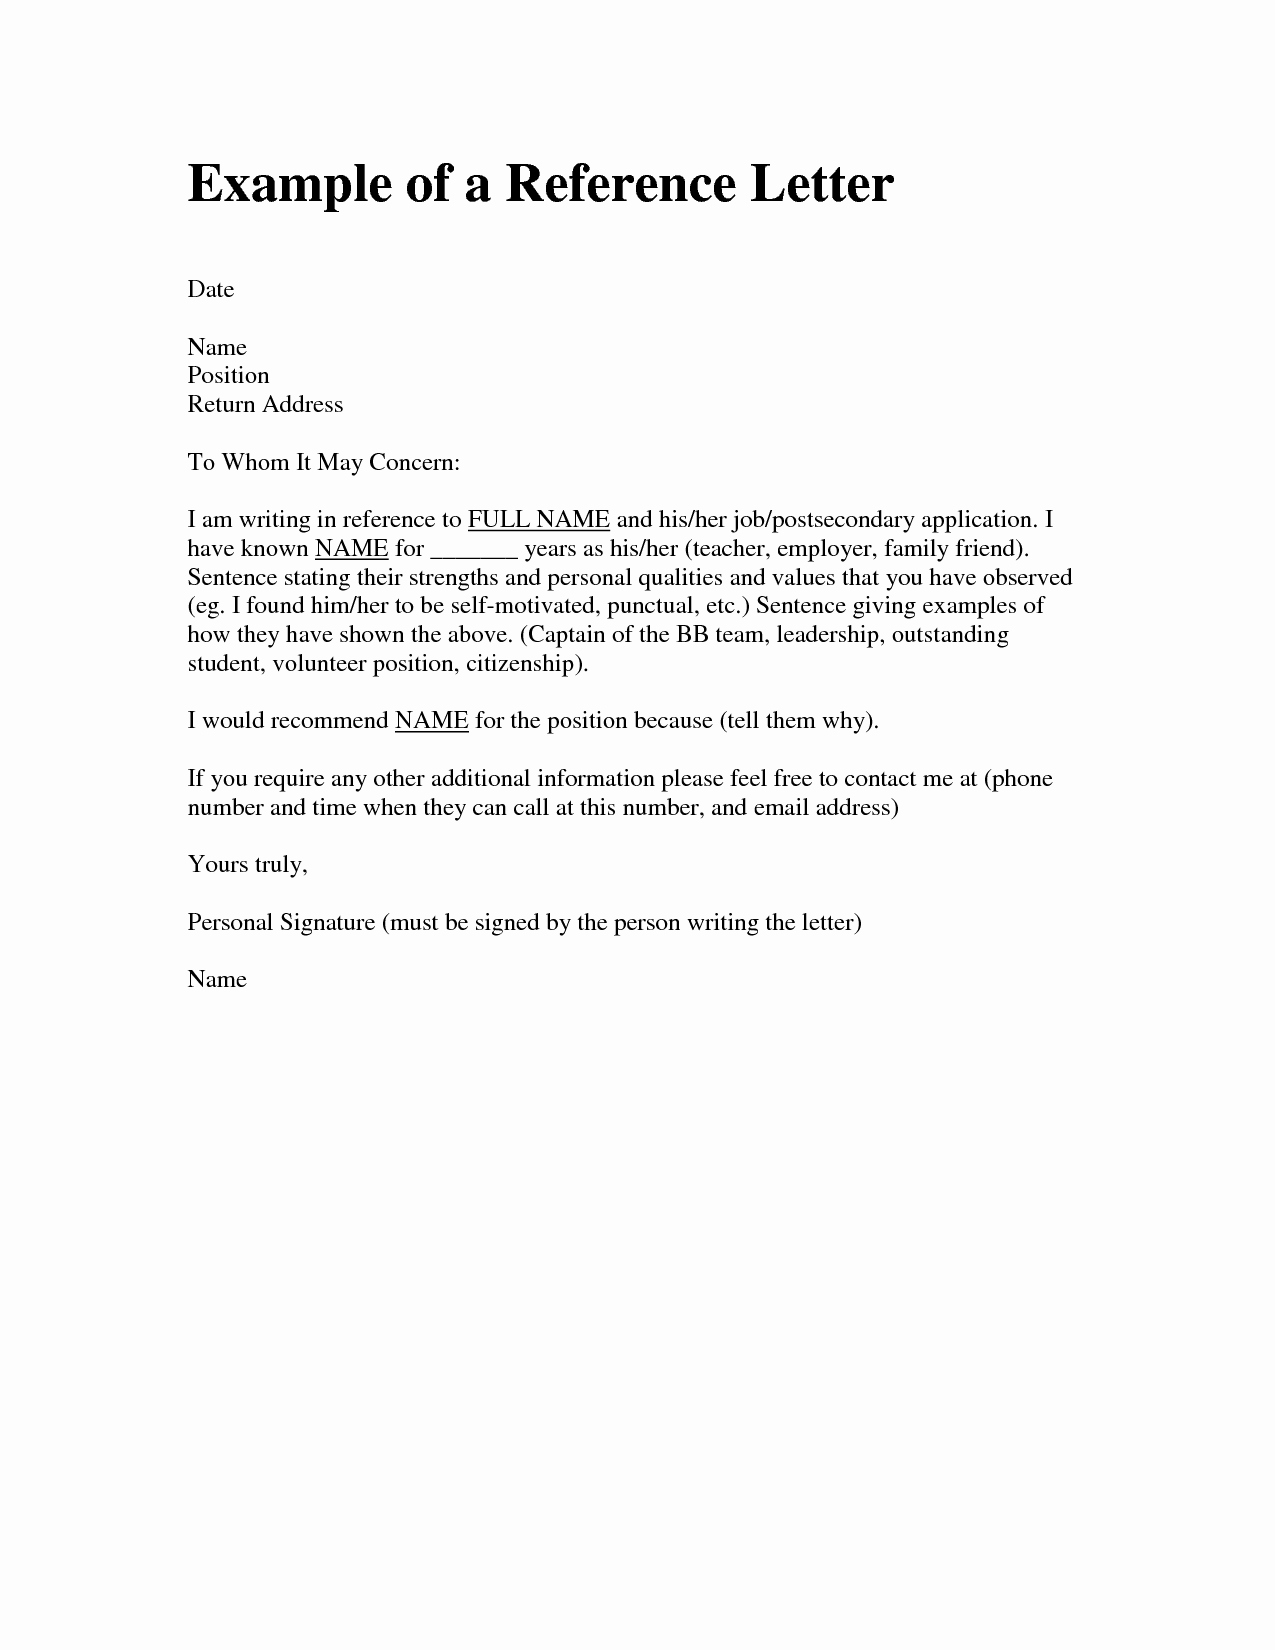 Personal Reference Letter Template Free Fresh Sample Personal Re Mendation Letter for Employment